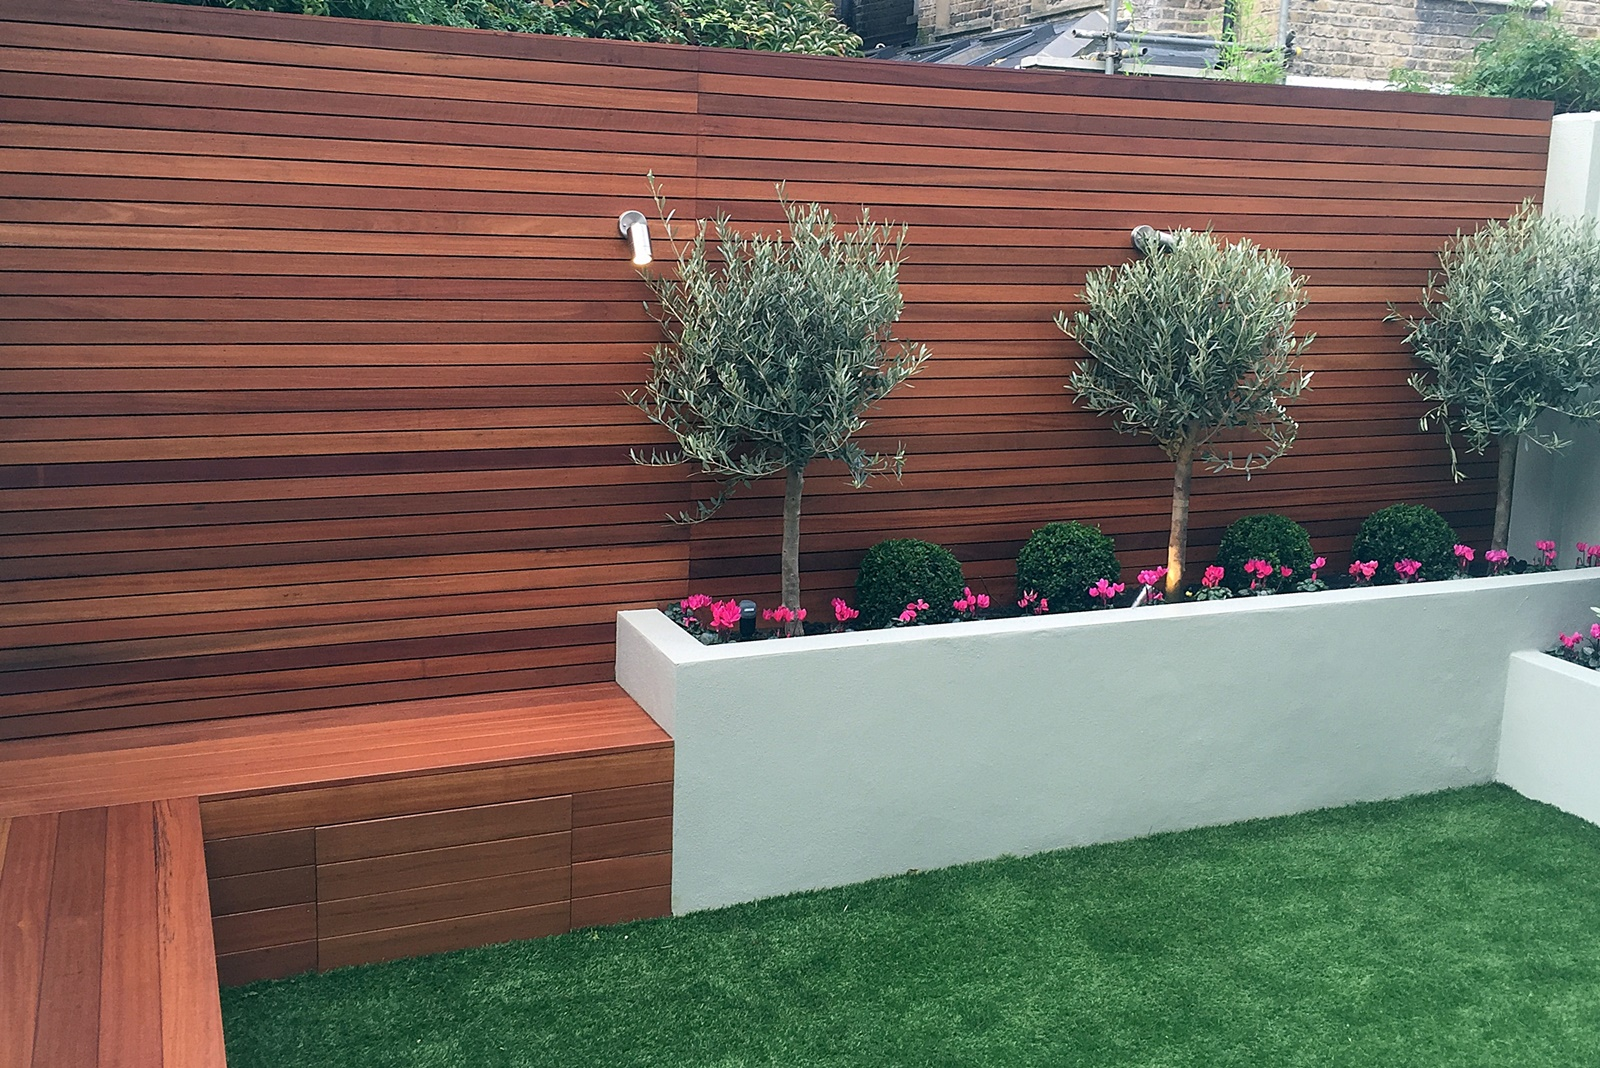 raised bed hardwood screen trellis privacy fence clapham battersea balham wandsworth london